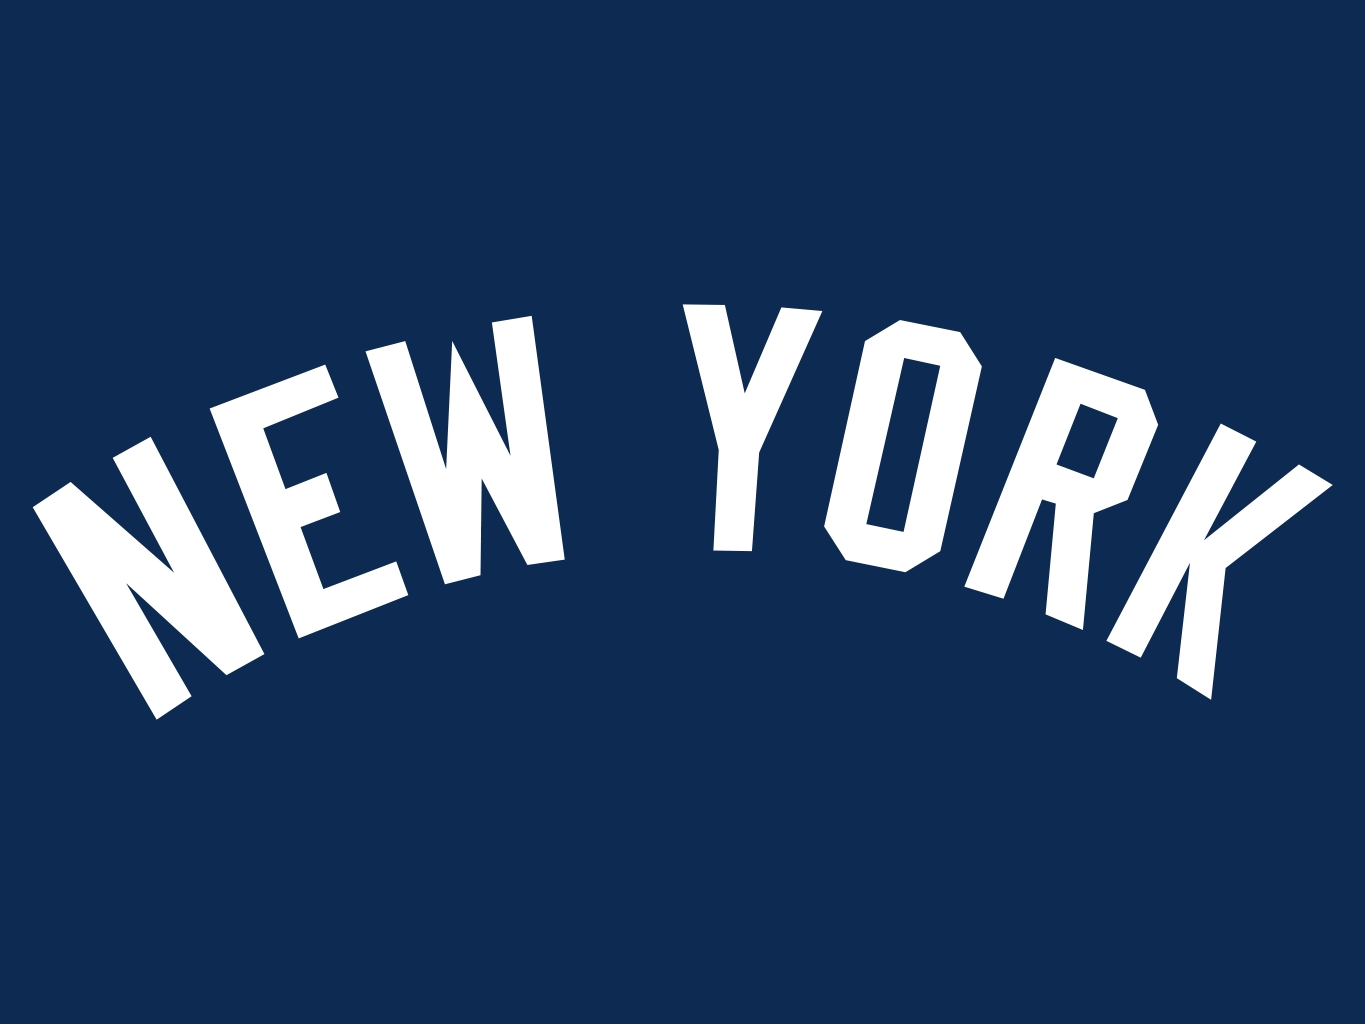 New York Yankees wallpapers New York Yankees background   Page 5 1365x1024